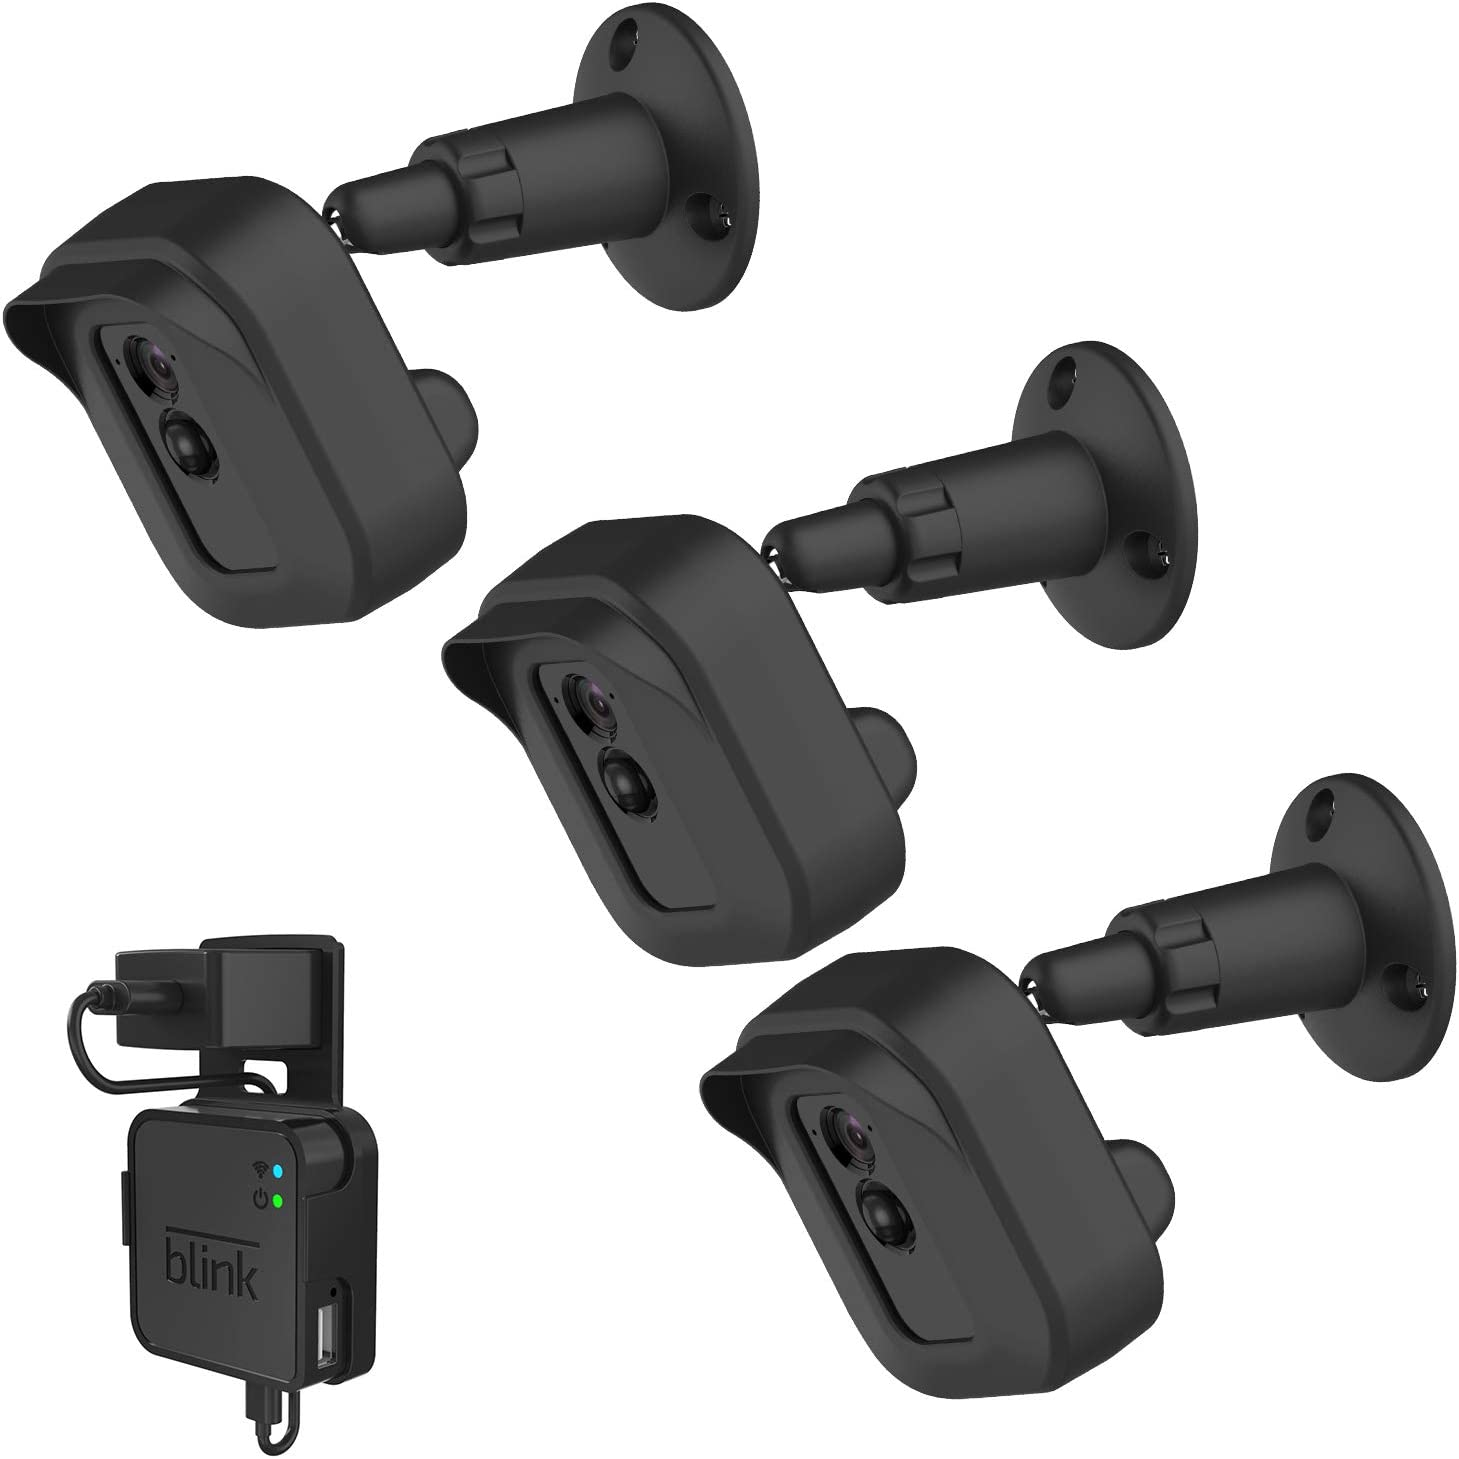 Blink XT//XT2 Camera Wall Mount Bracket Weather Proof 360* Full Protectiion 3Pack